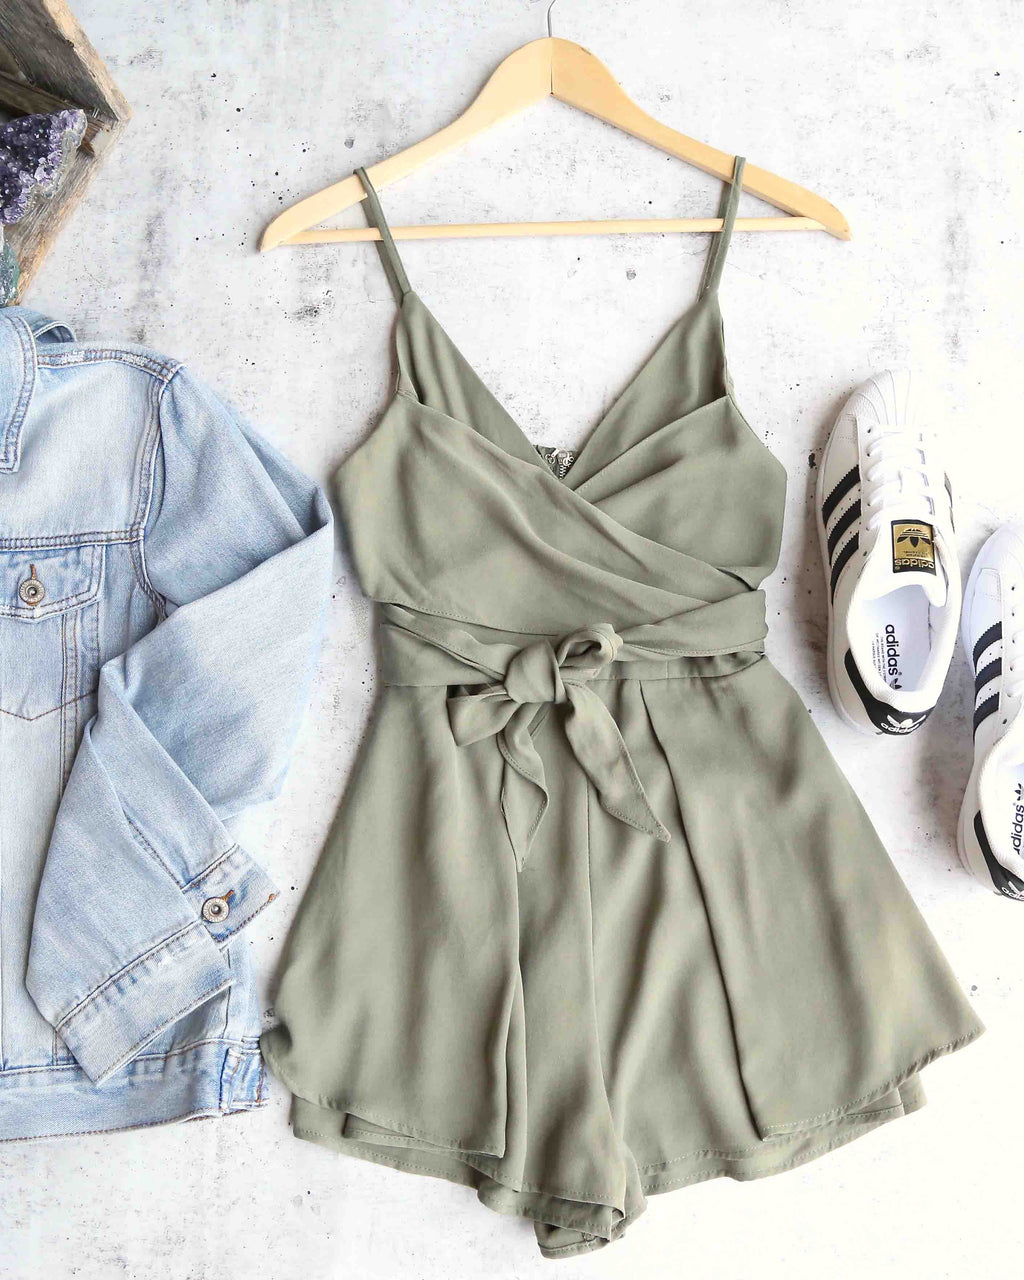 Maison Wrap Romper in Olive